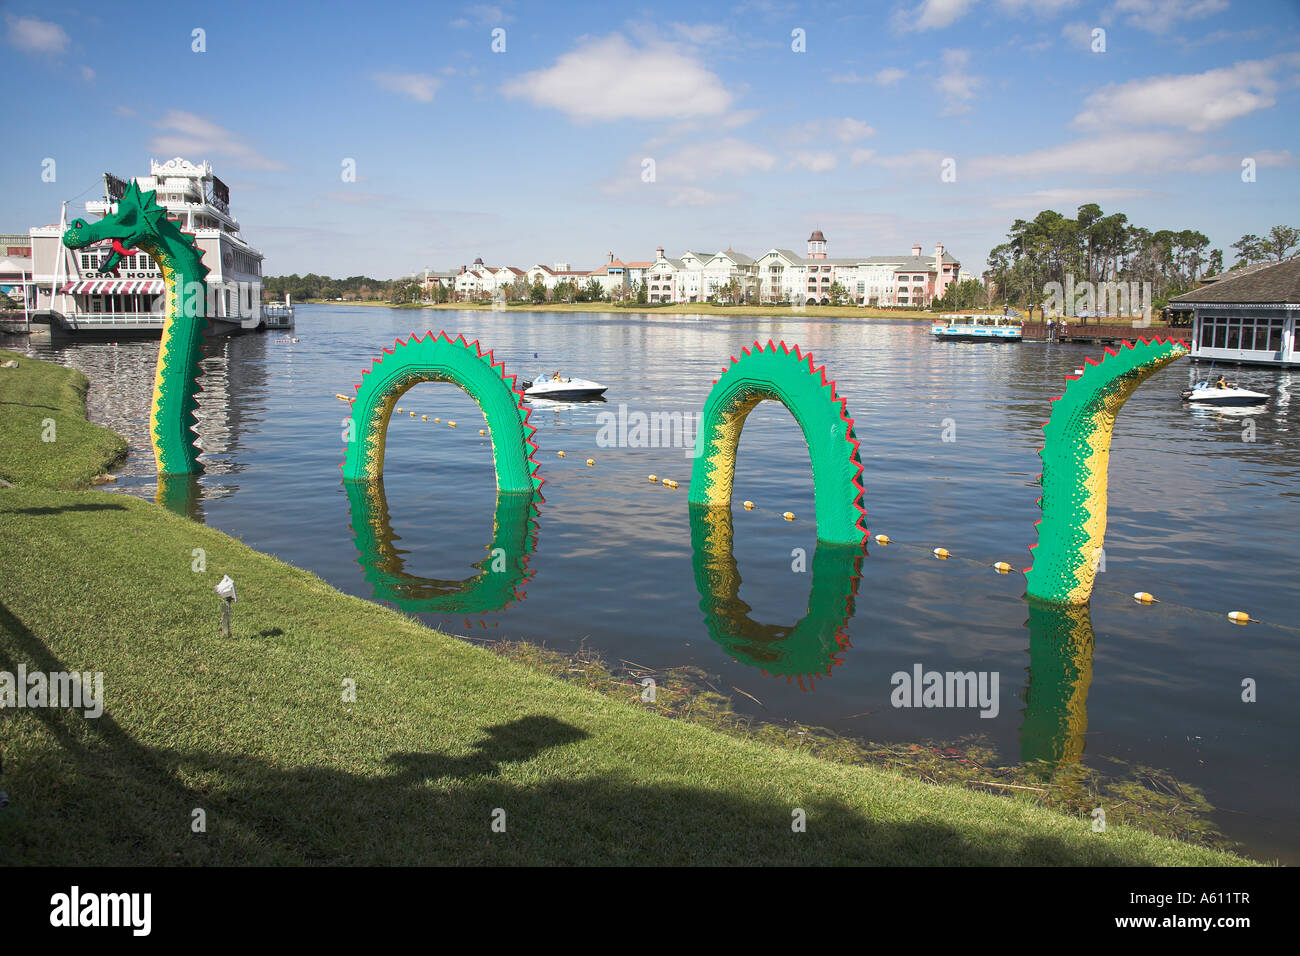 Loch Ness Monster, made of Lego components, Downtown Disney, Orlando, Florida, USA - Stock Image